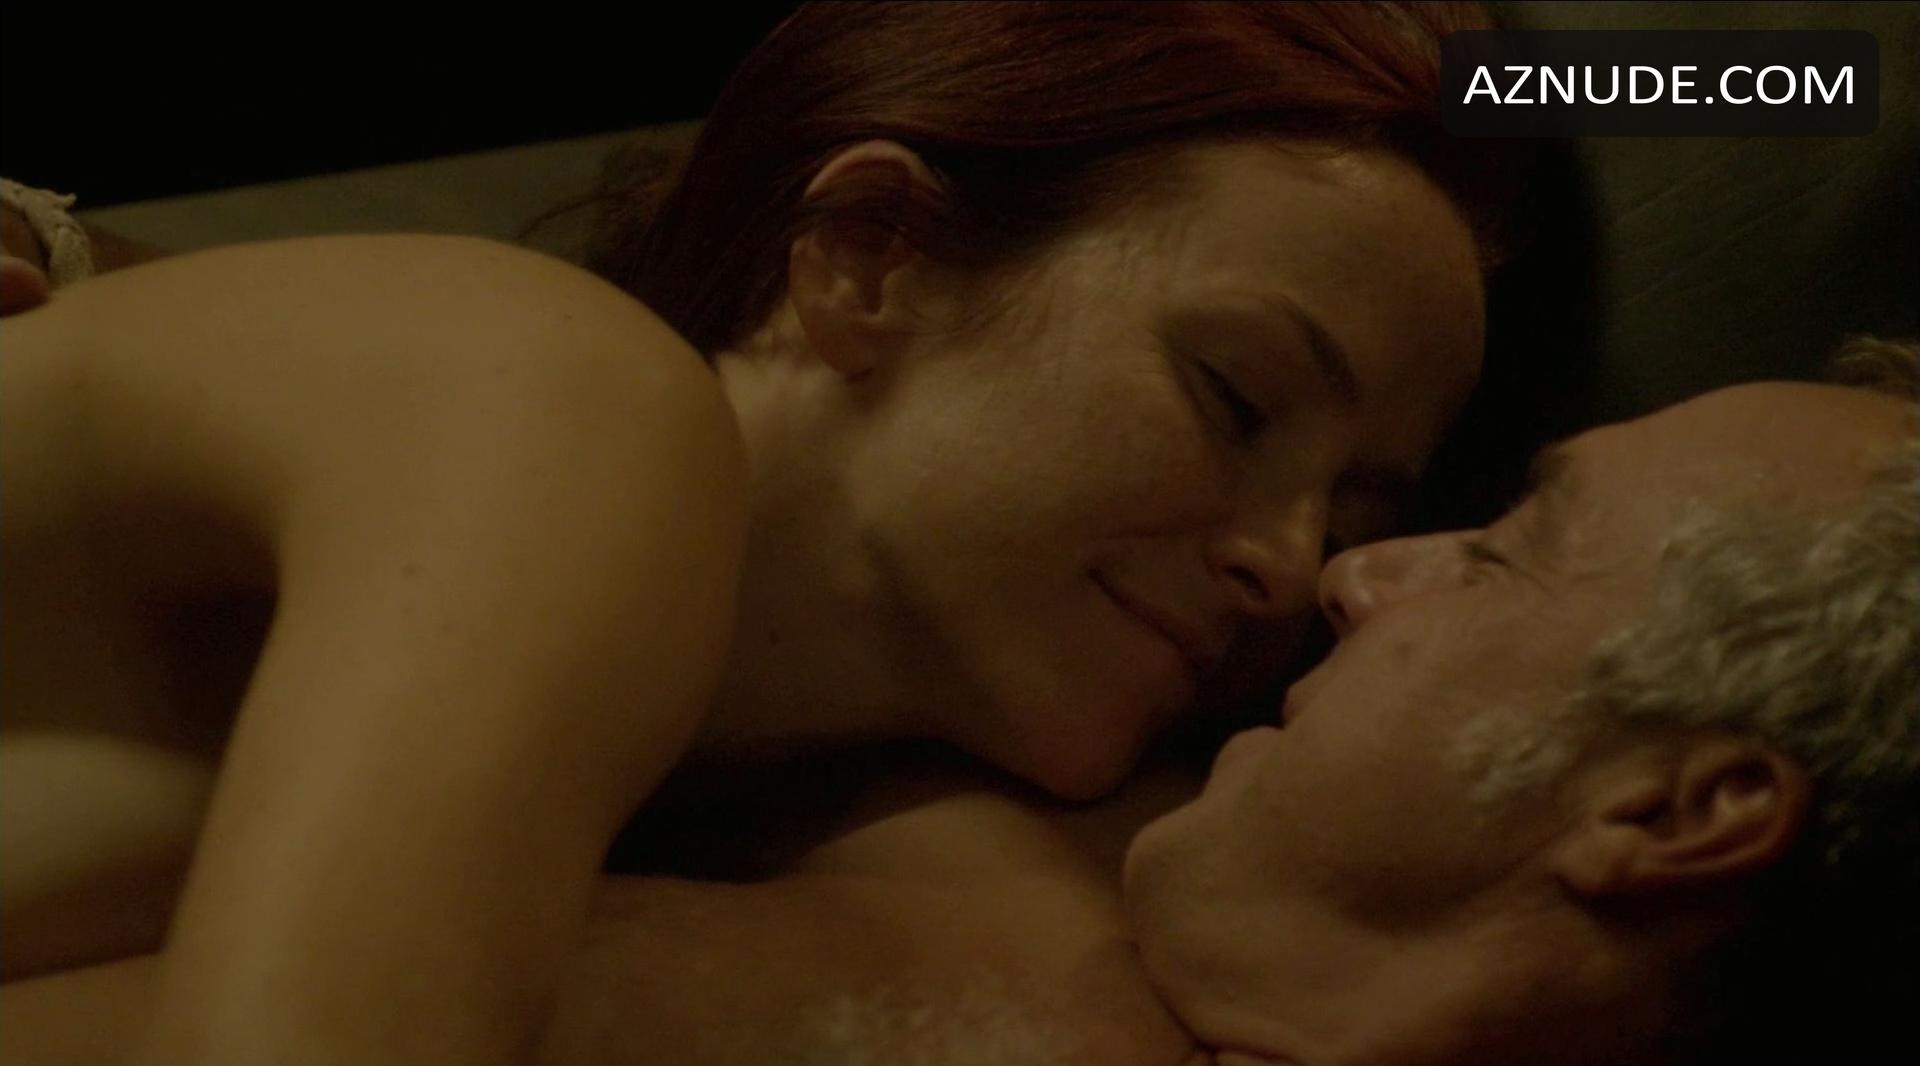 Annie wersching nude fakes final, sorry